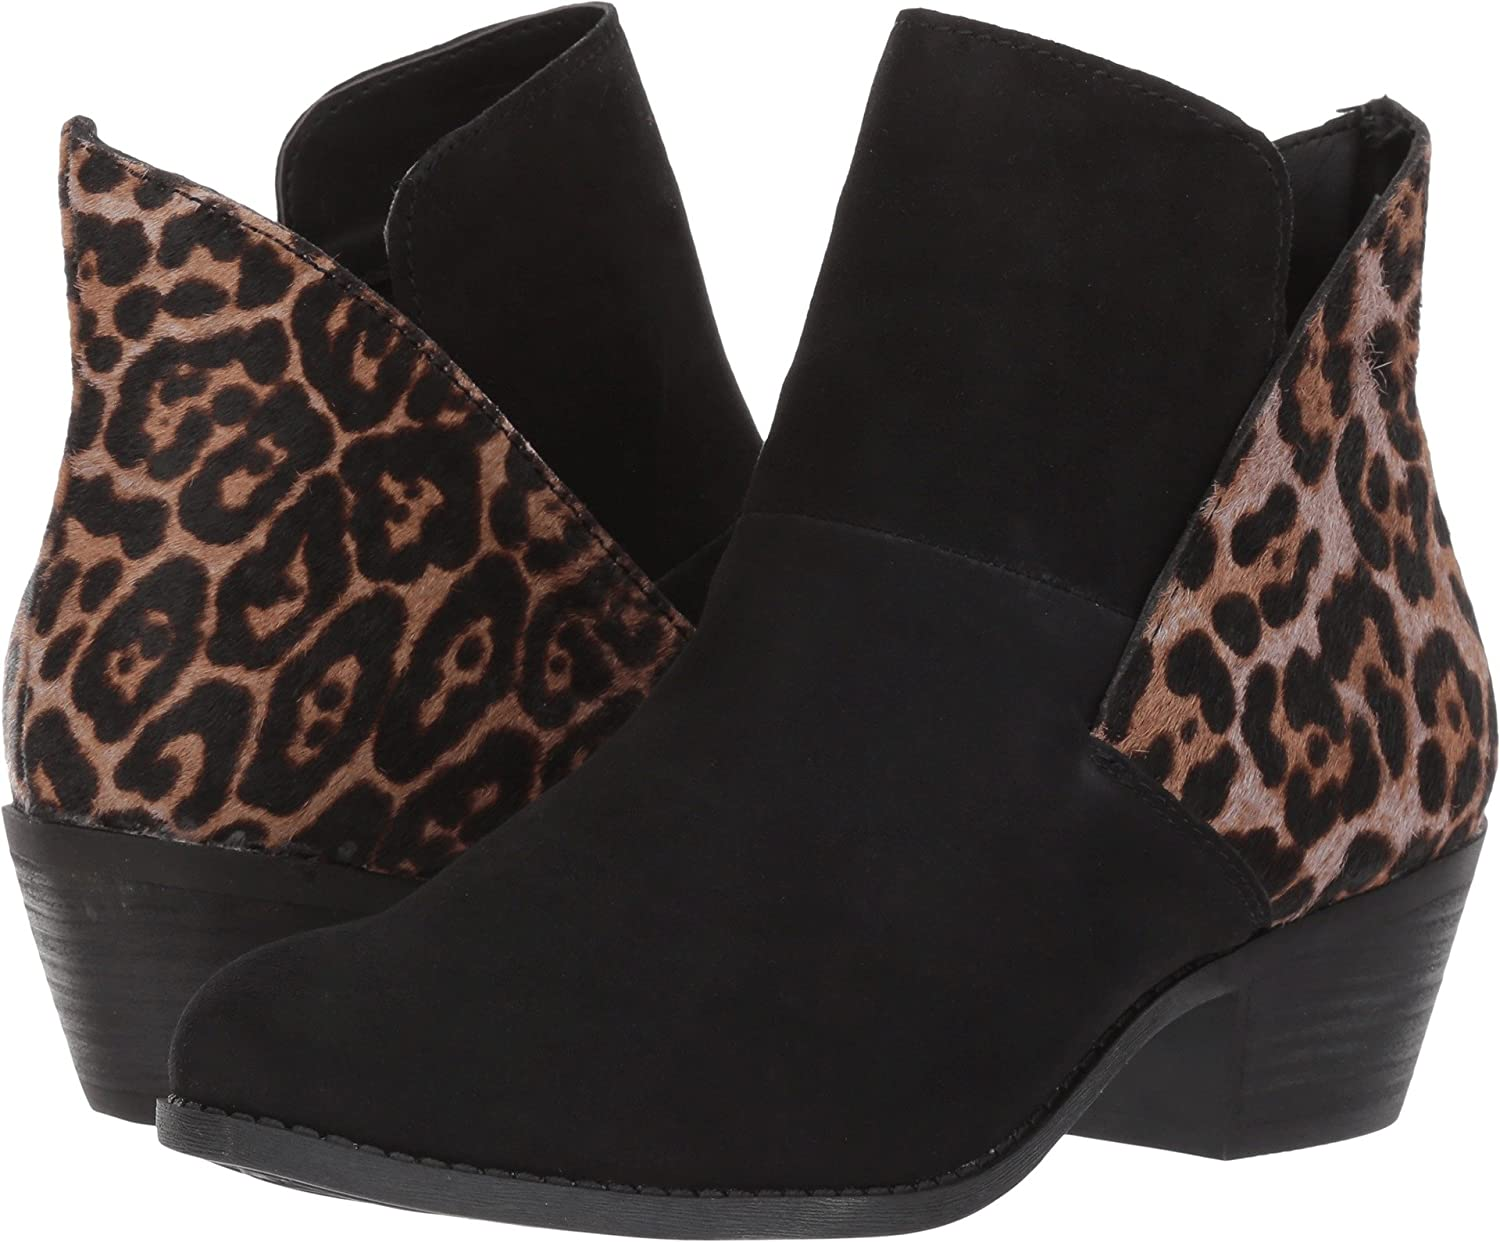 Black Ash Jag Kid Suede Haircalf Me Too Womens Zena 14 Leather Almond Toe Ankle Fashion Boots